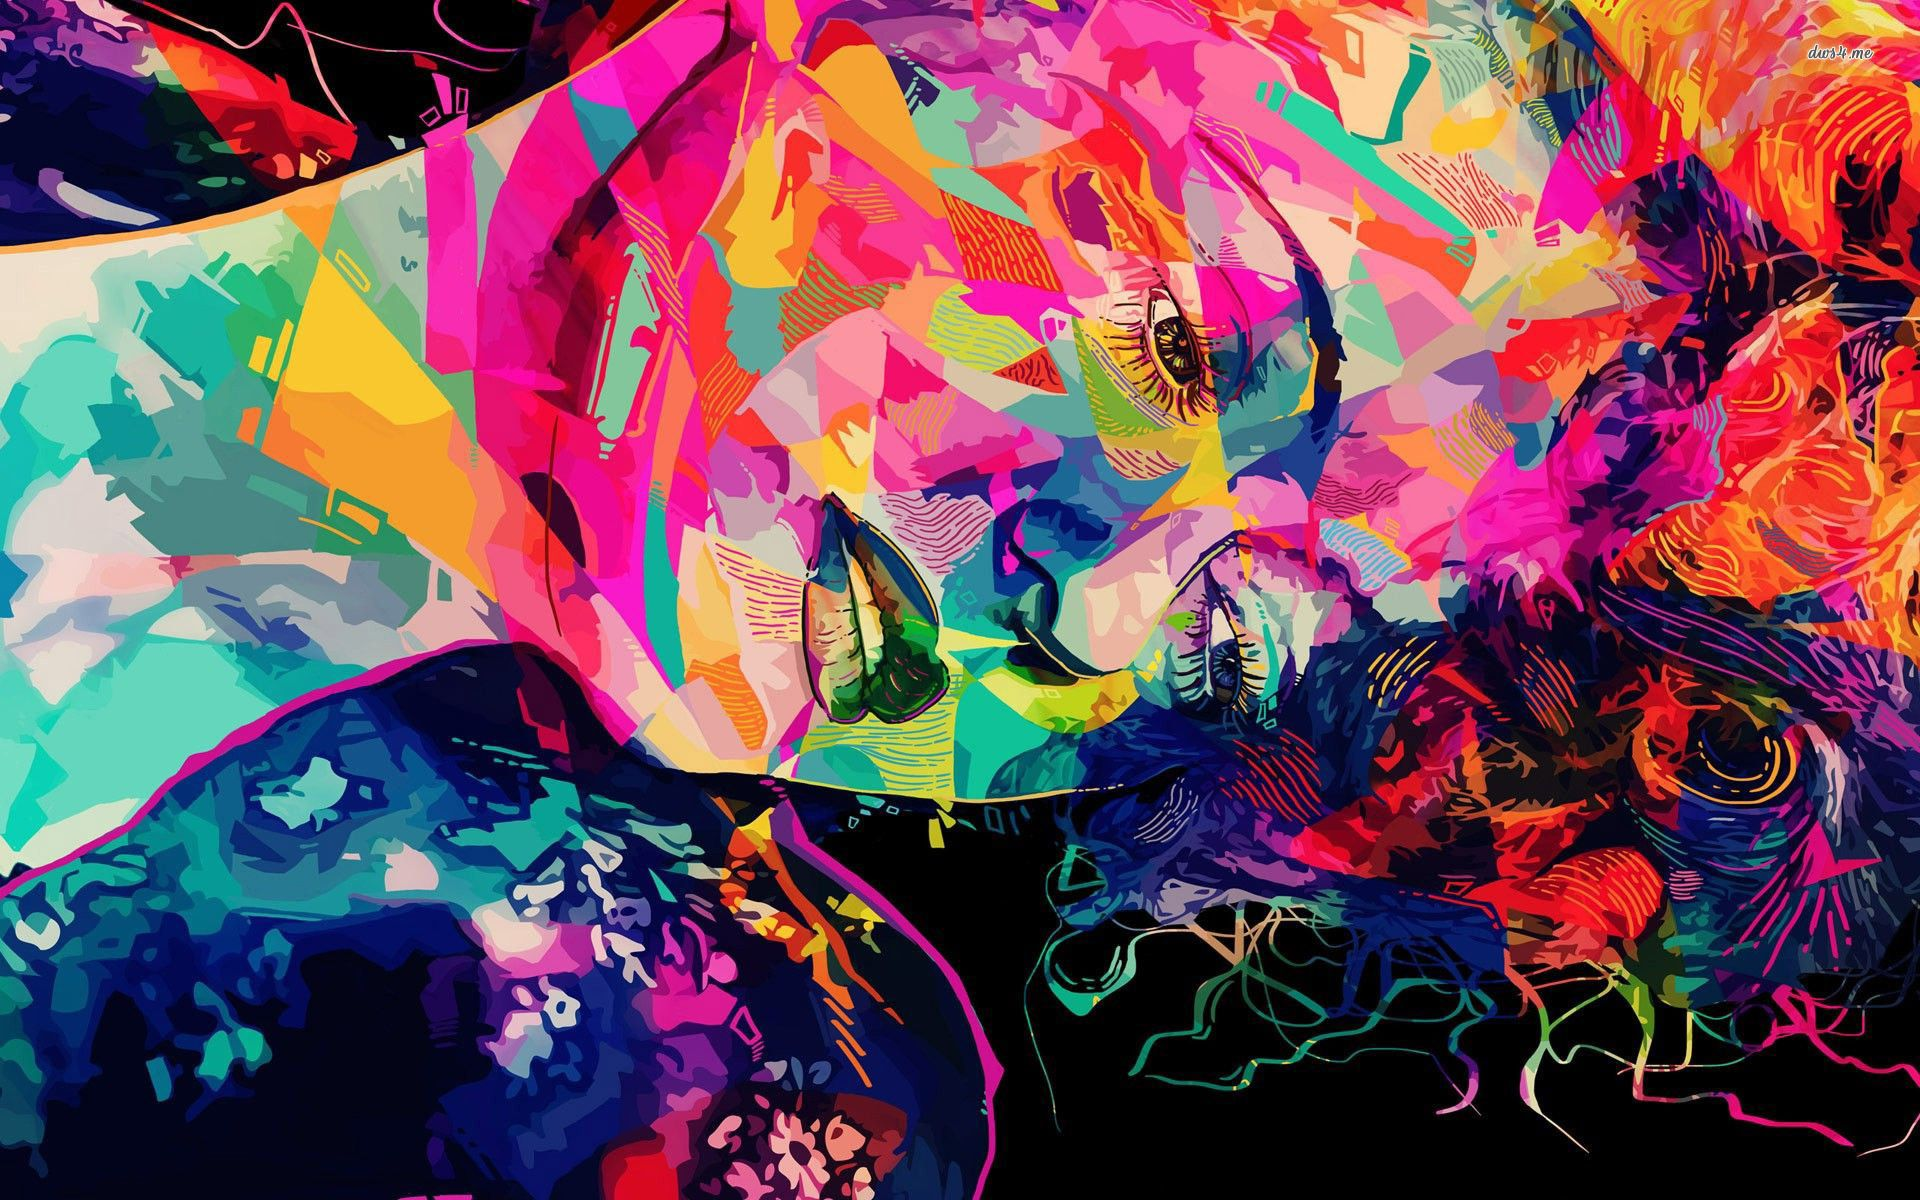 artistic abstract wallpaper 1080p